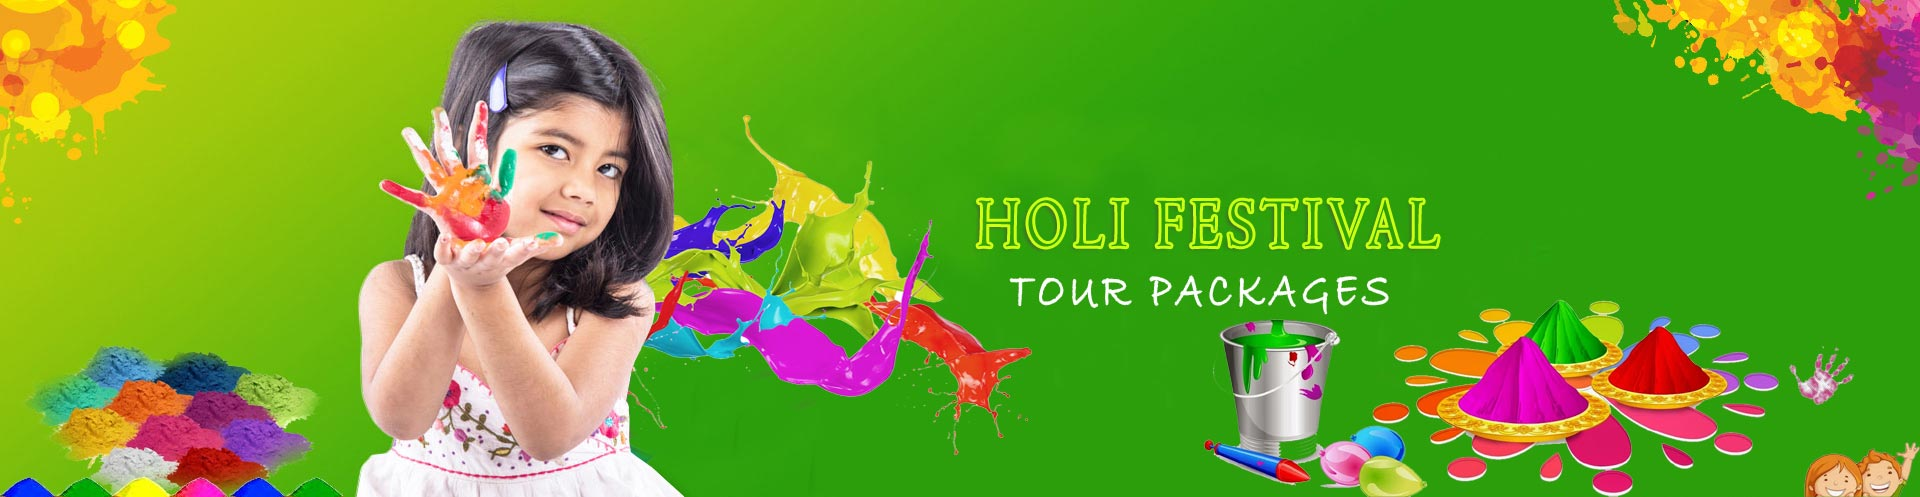 Holi Festival Tour Packages